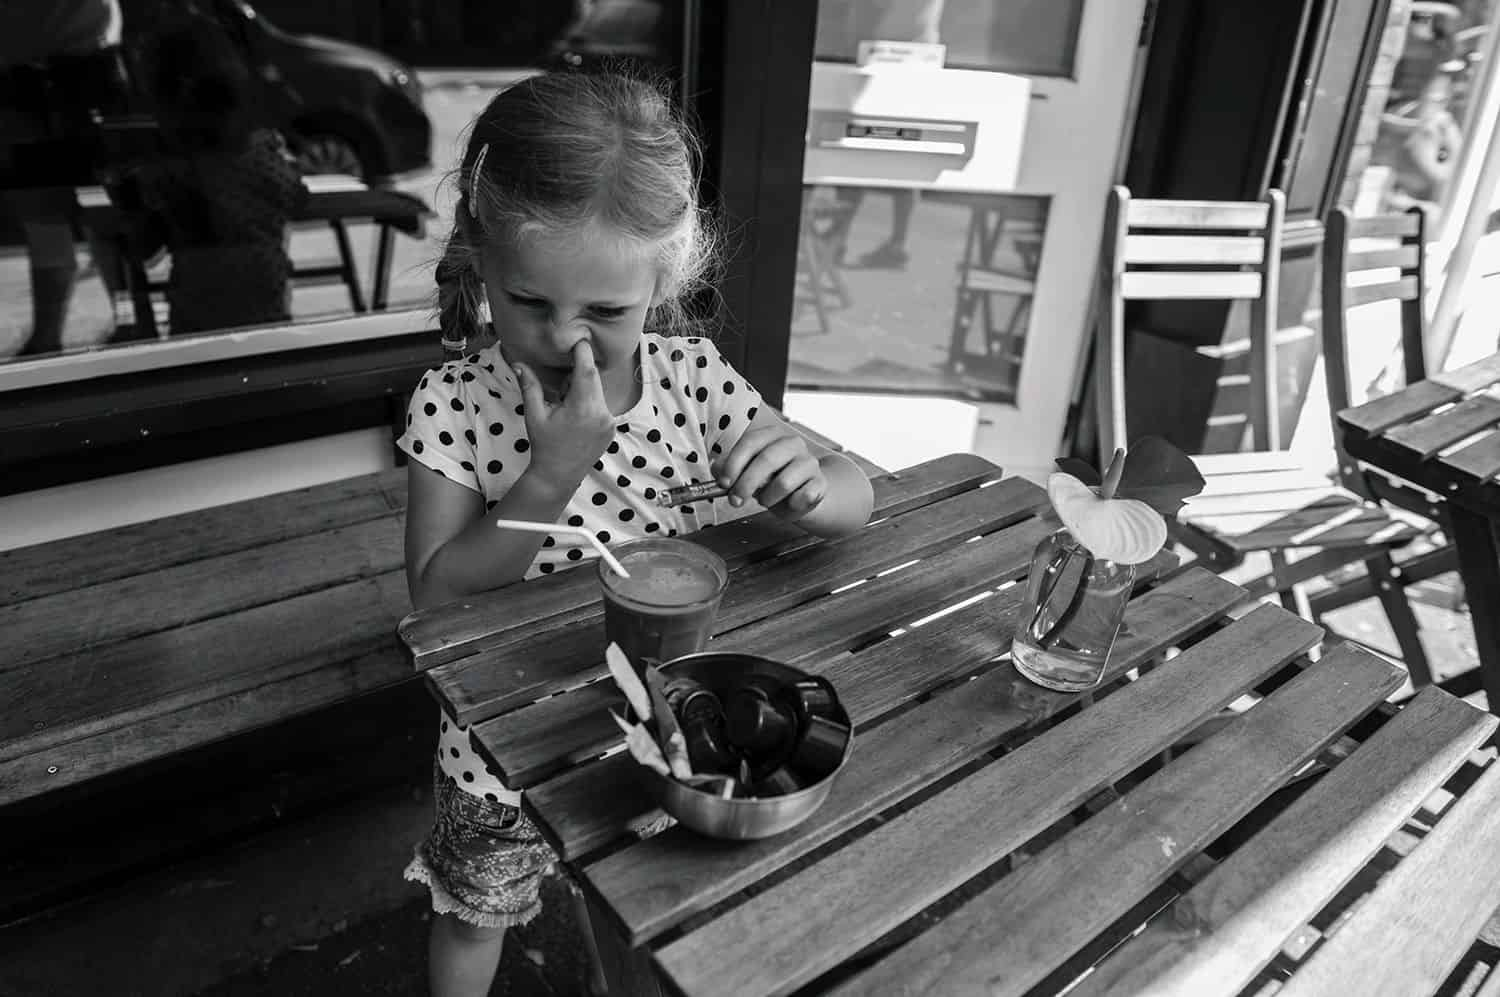 A little girl with a braid sits at an outdoor dining table picking her nose